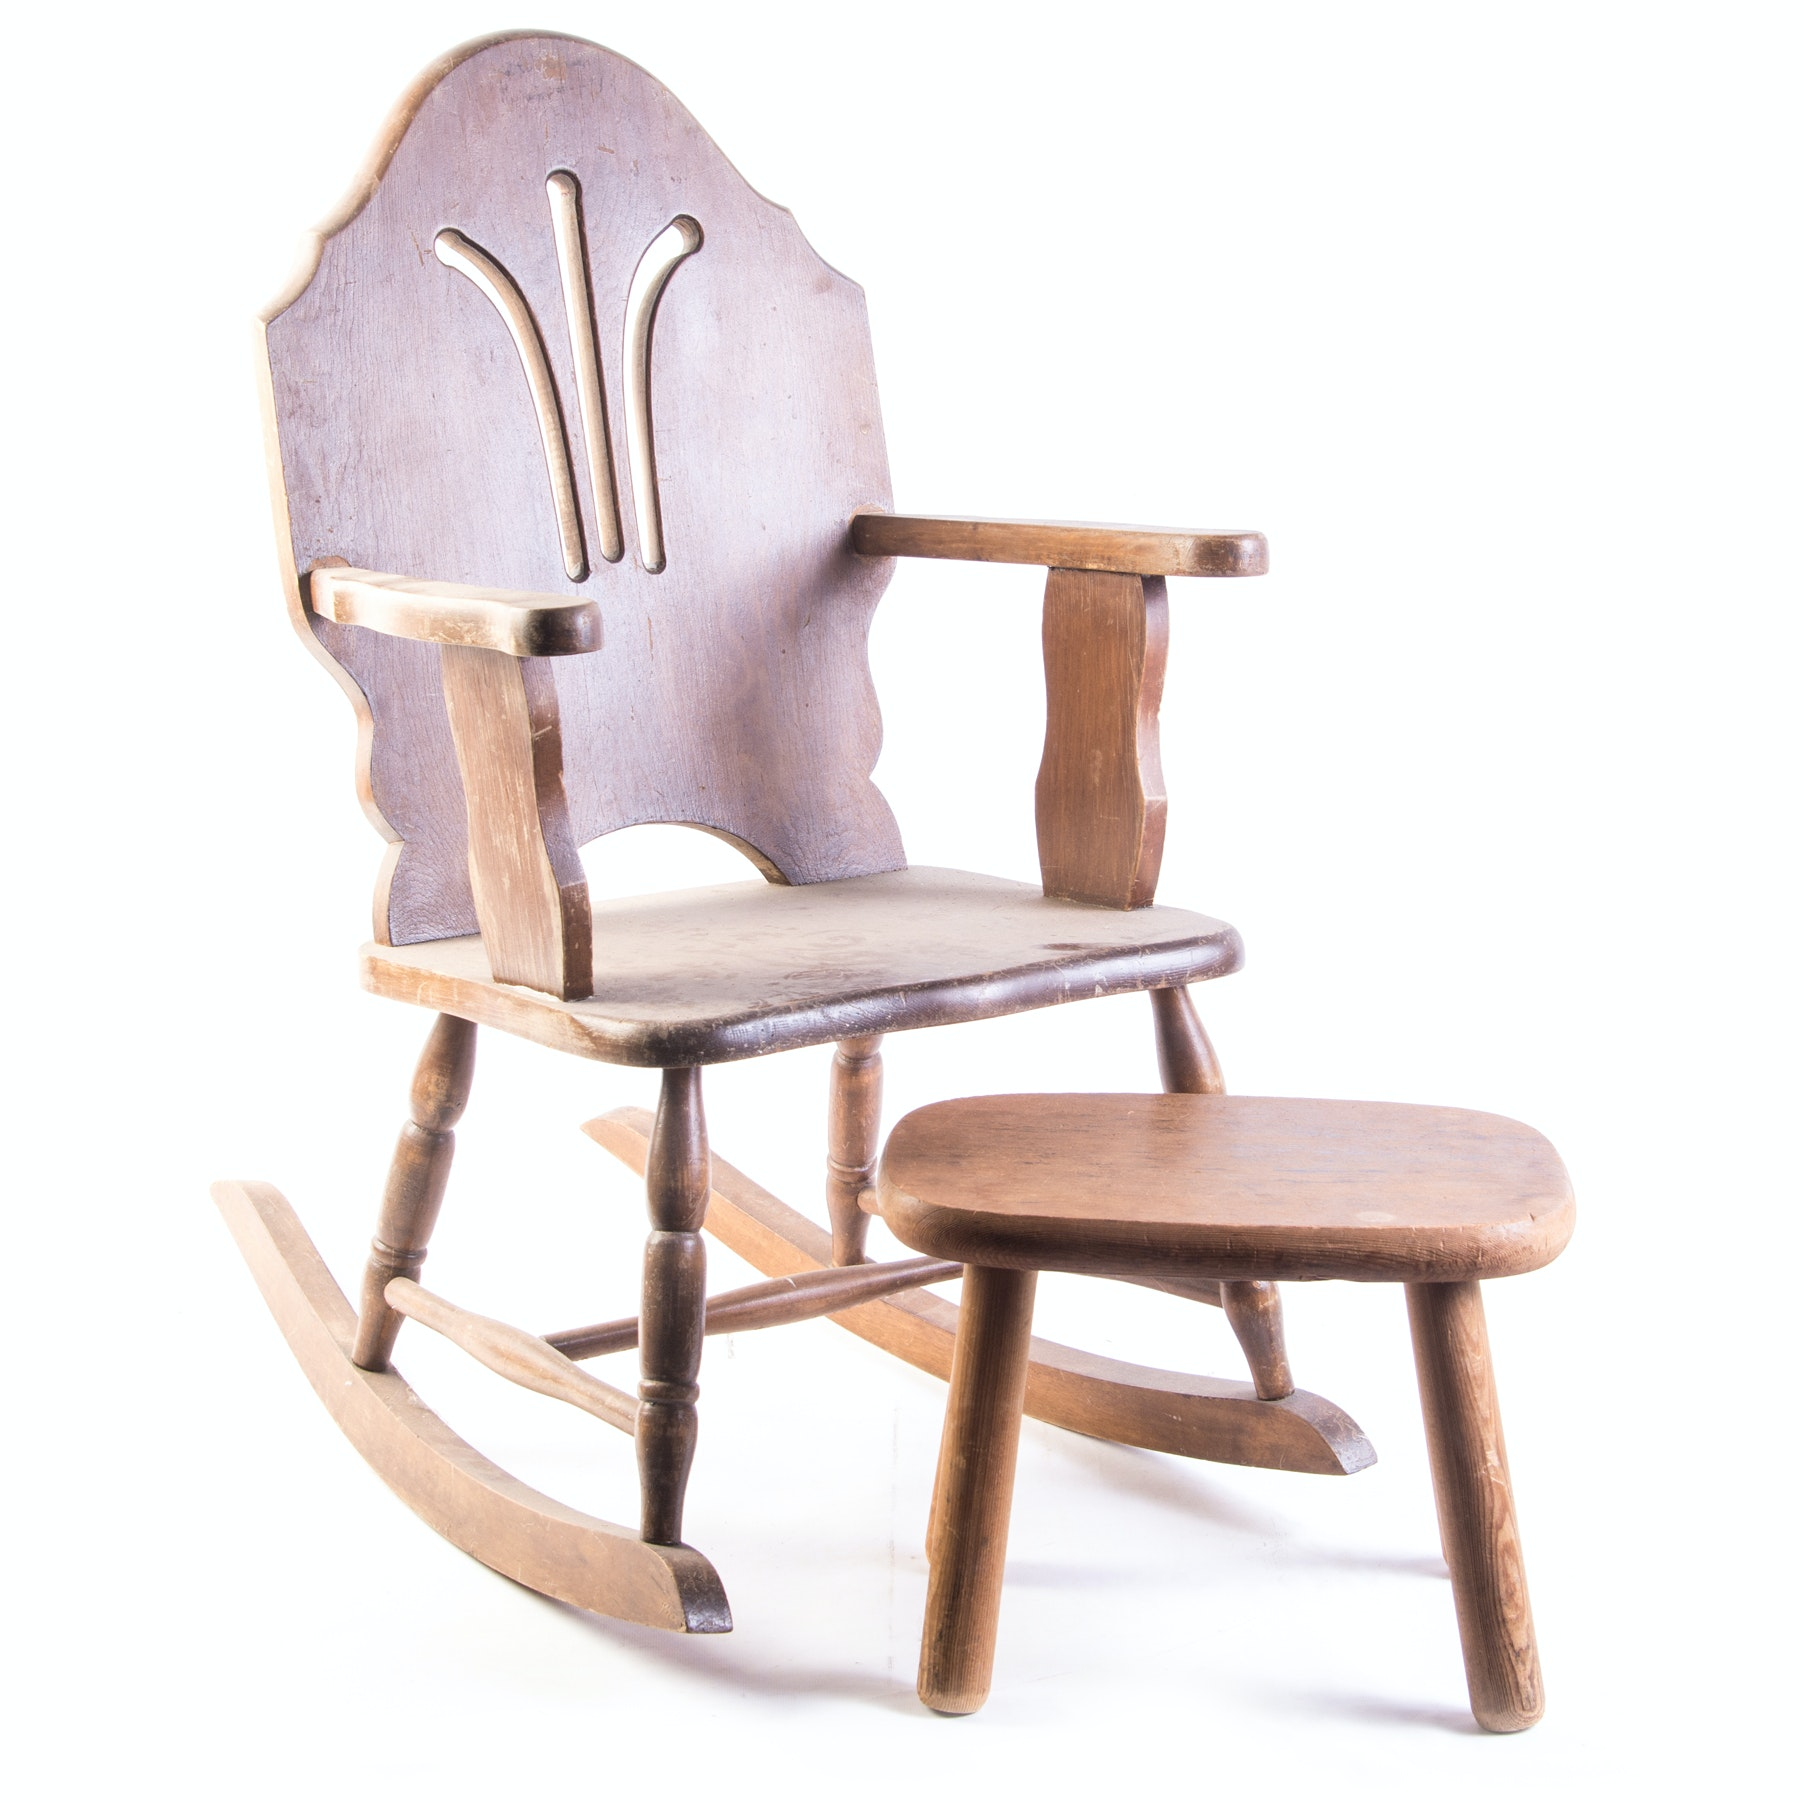 Vintage Child's Rocker and Stool